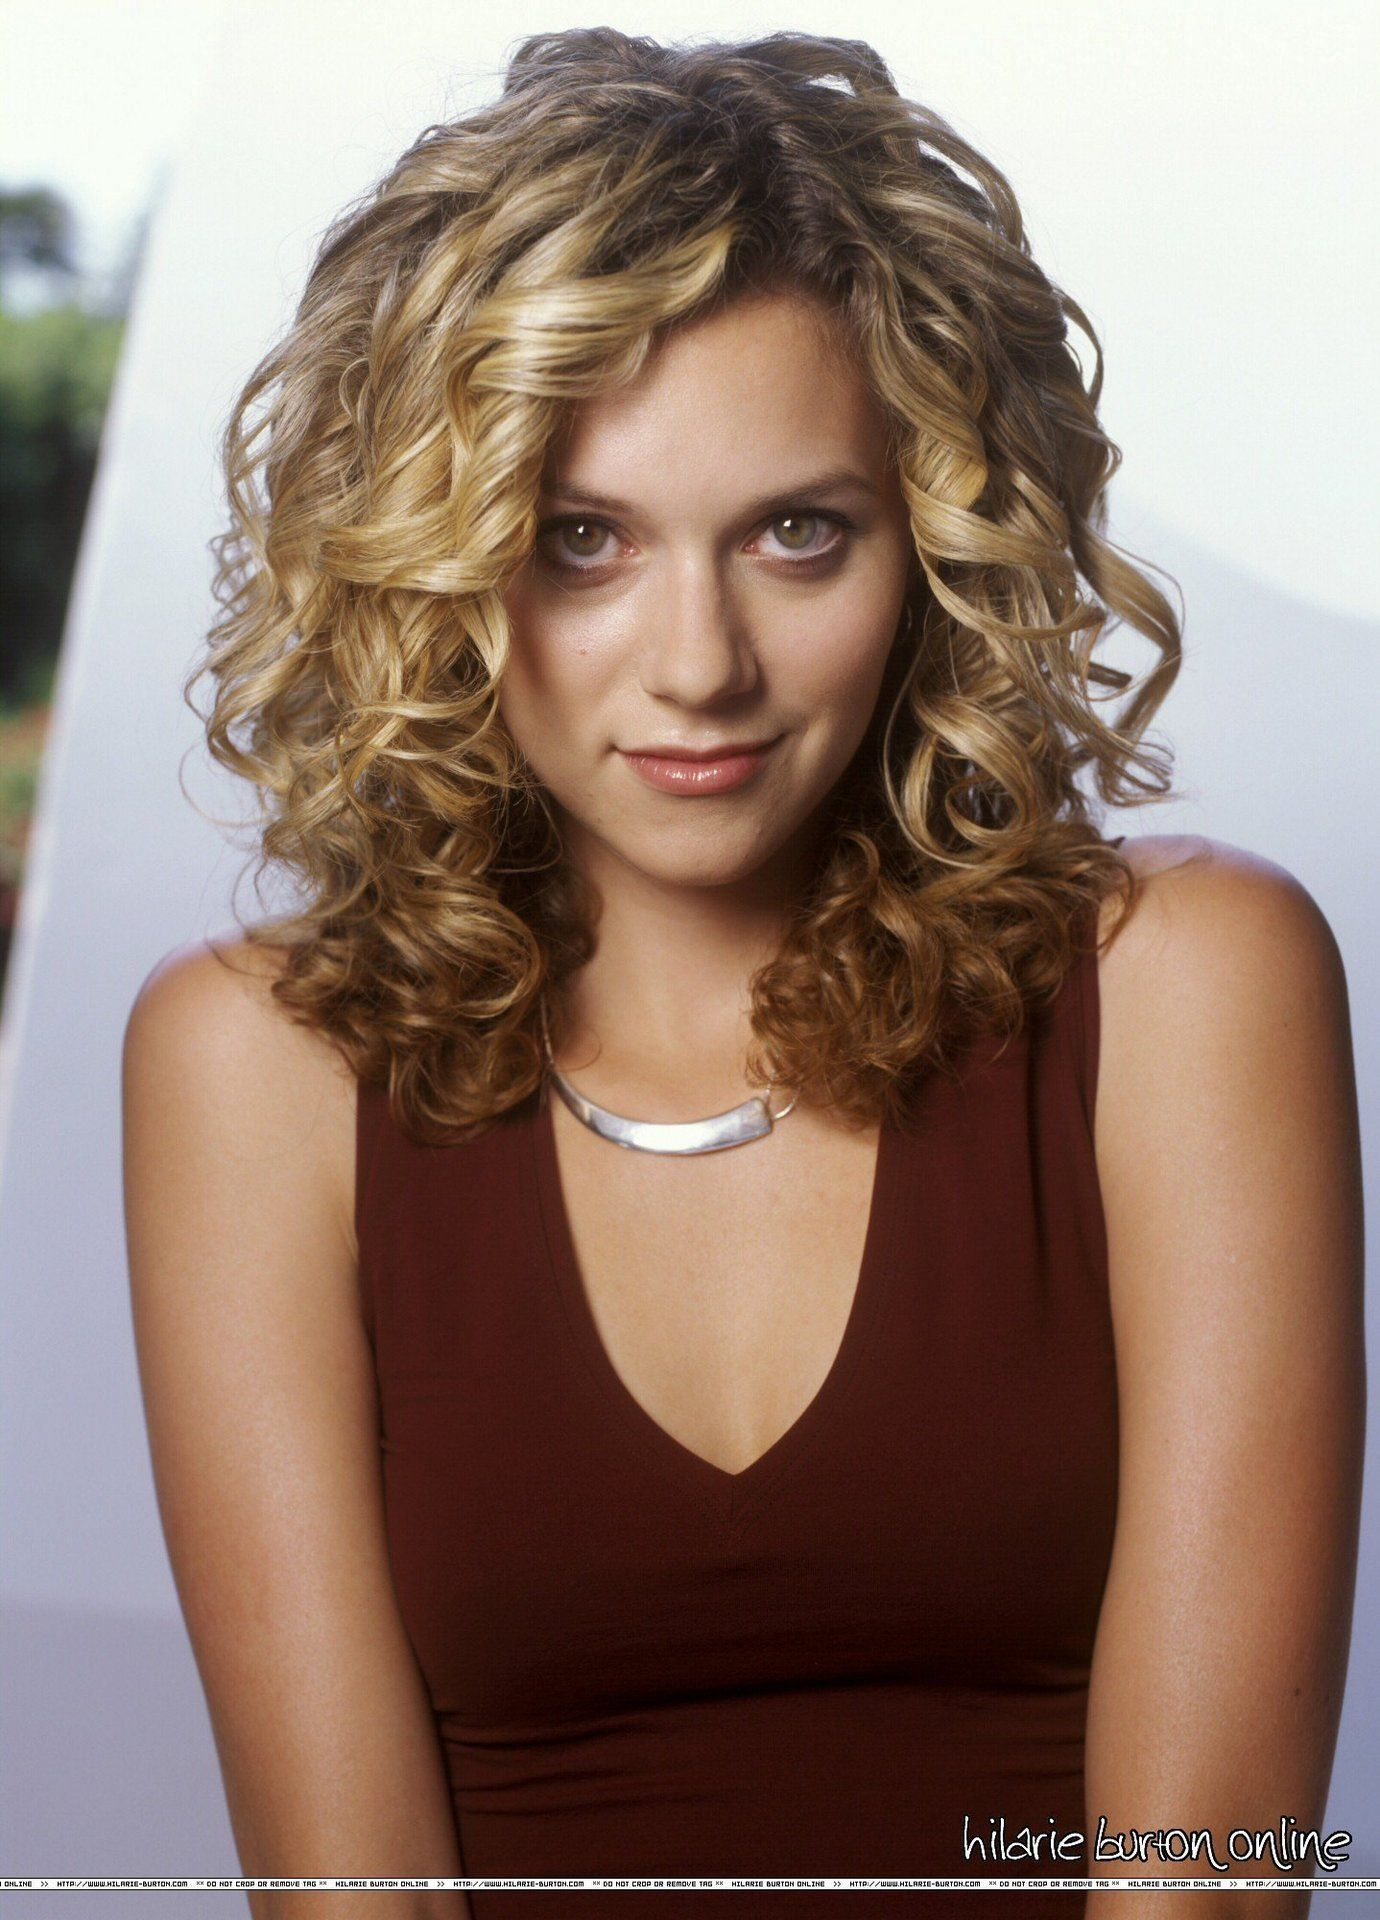 Peyton Sawyer / Hilarie Burton | All that hair | Pinterest ... Hilarie Burton